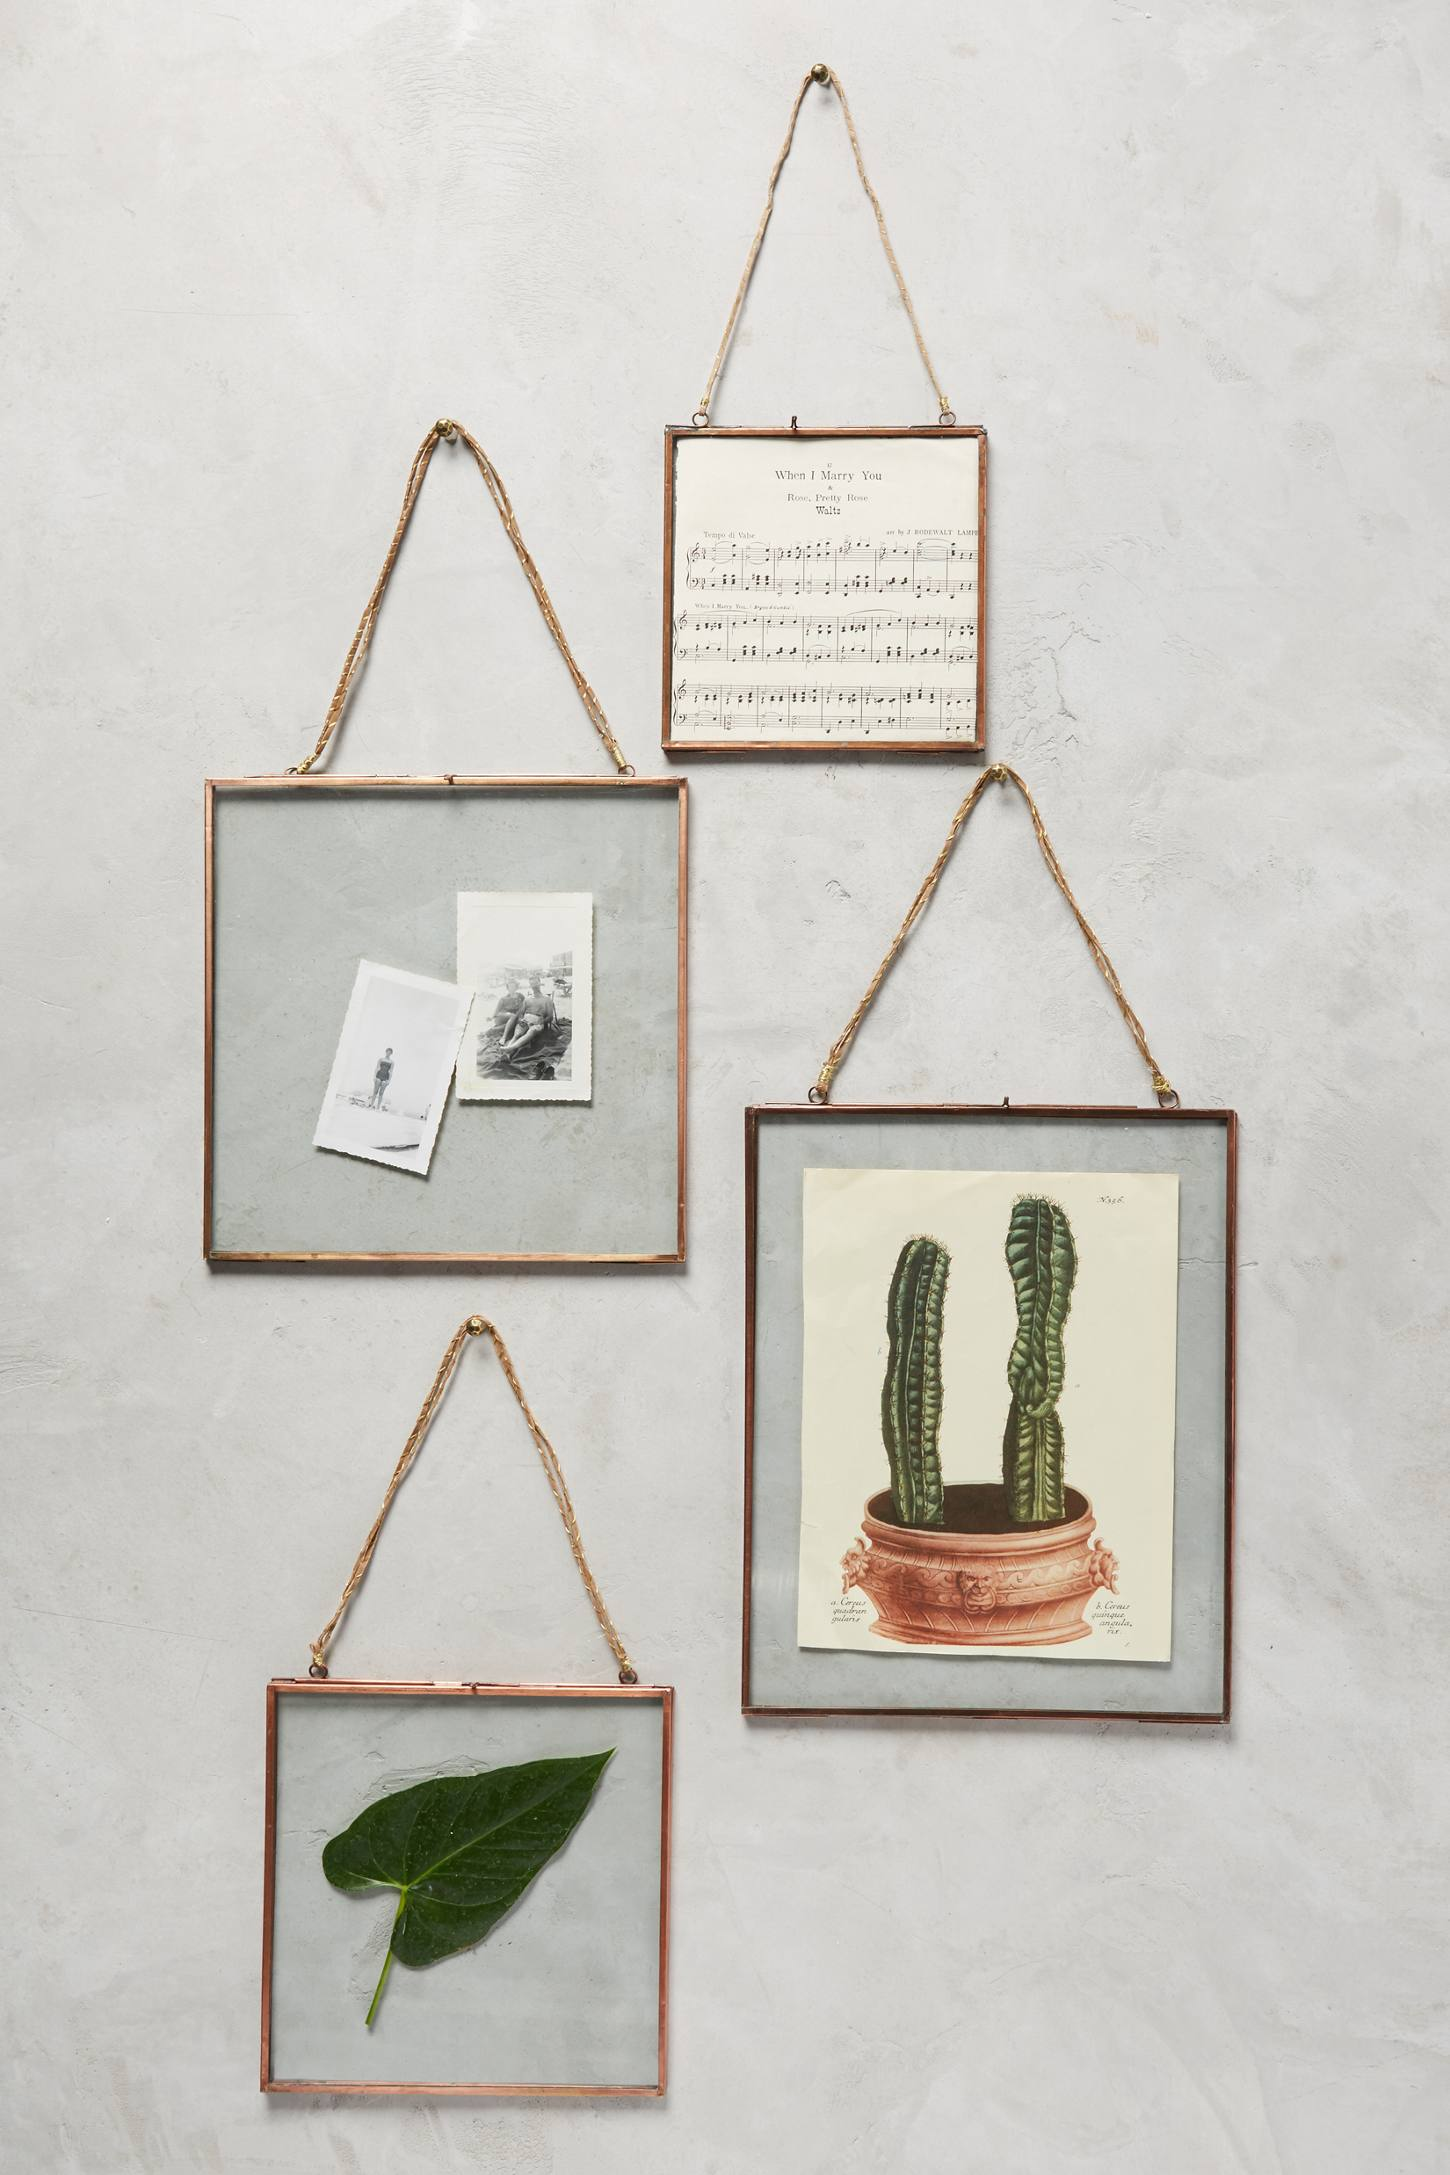 hinged hanging picture frame anthropologie. Black Bedroom Furniture Sets. Home Design Ideas